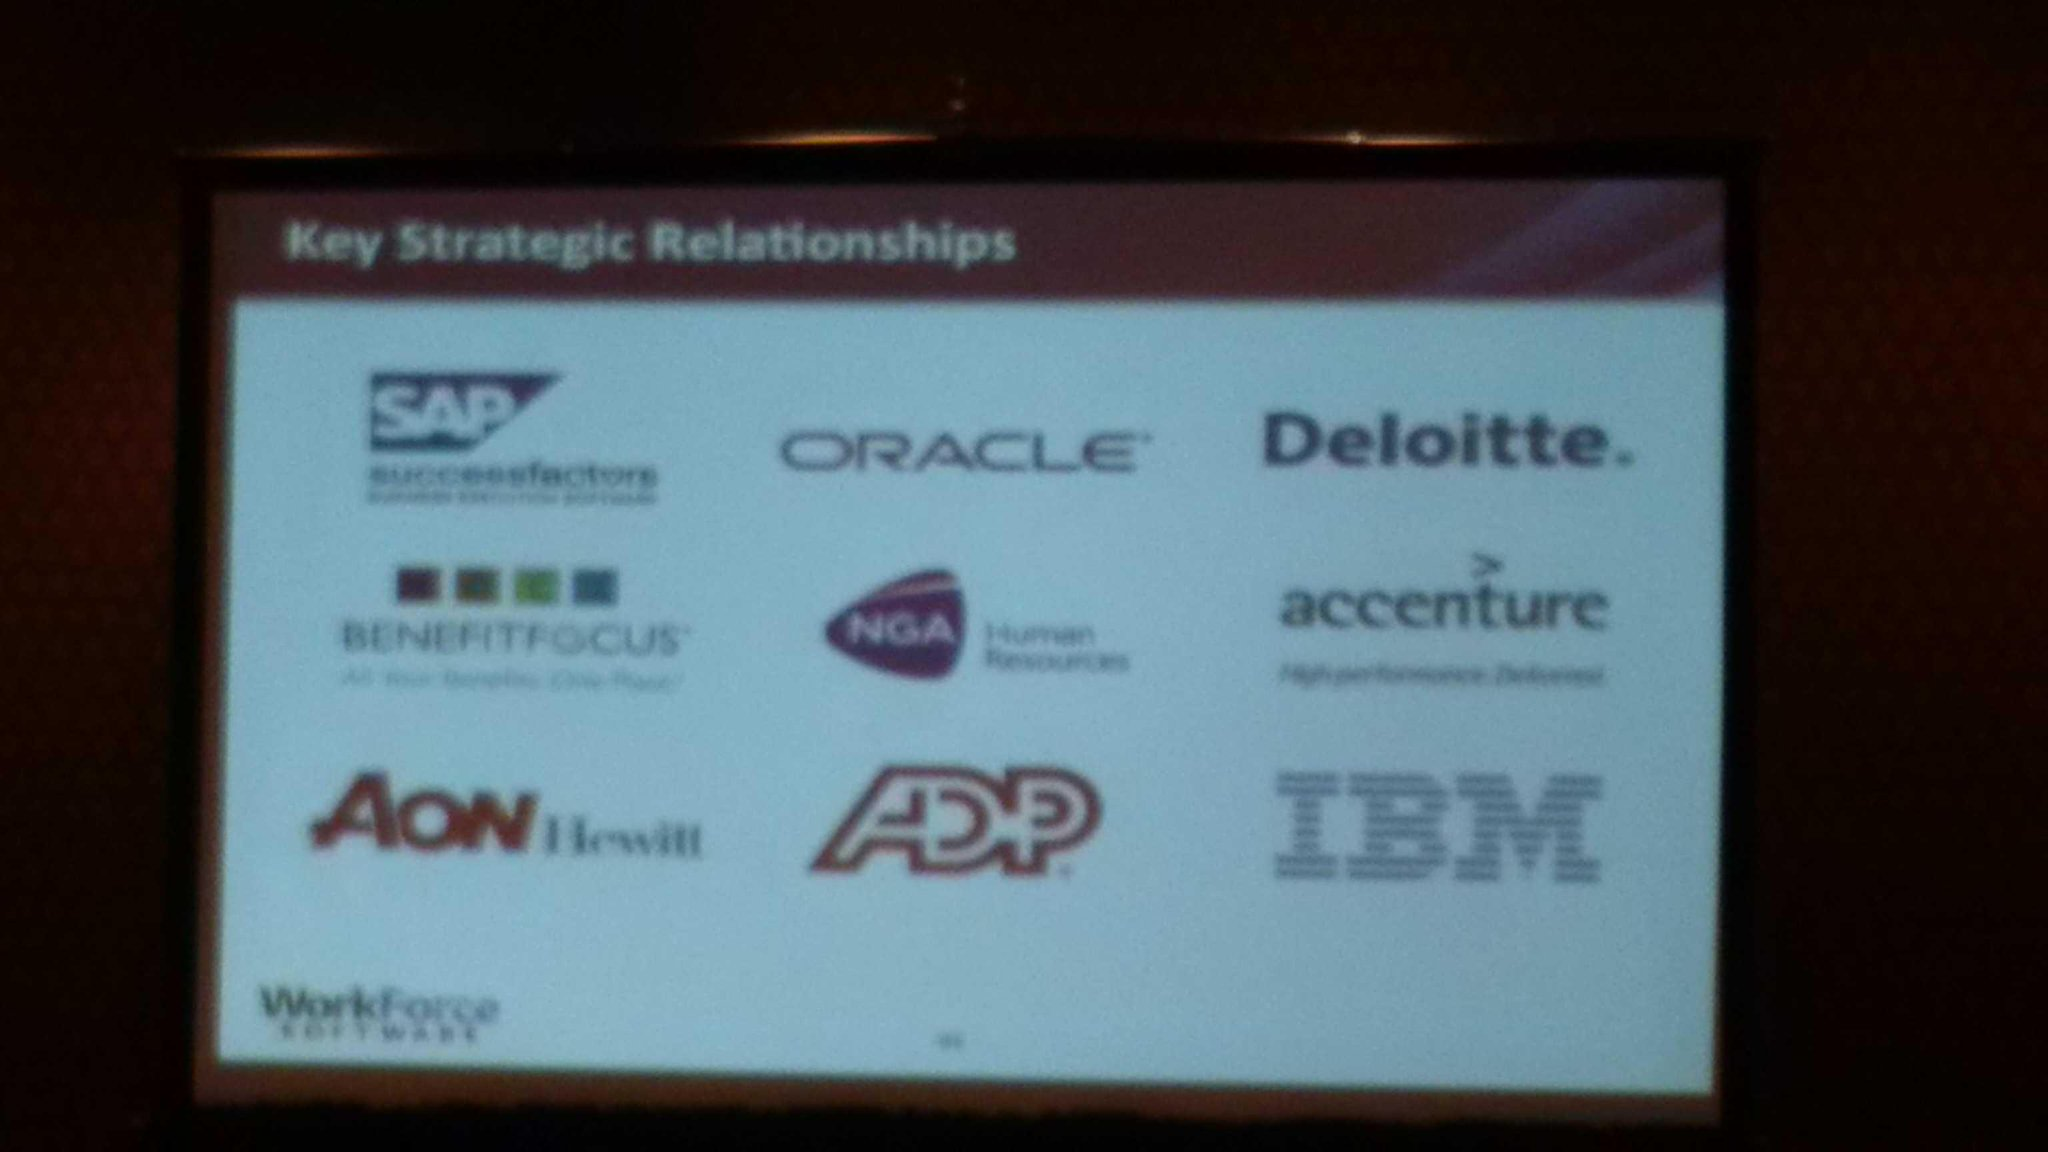 RT @holgermu: .@WorkforceSW has a large partner ecosystem @SAP @Oracle @Deloitte @Benefitfocus @NGAHR @IBM @ADP #VisionWFS http://t.co/wwklqPO0Sy